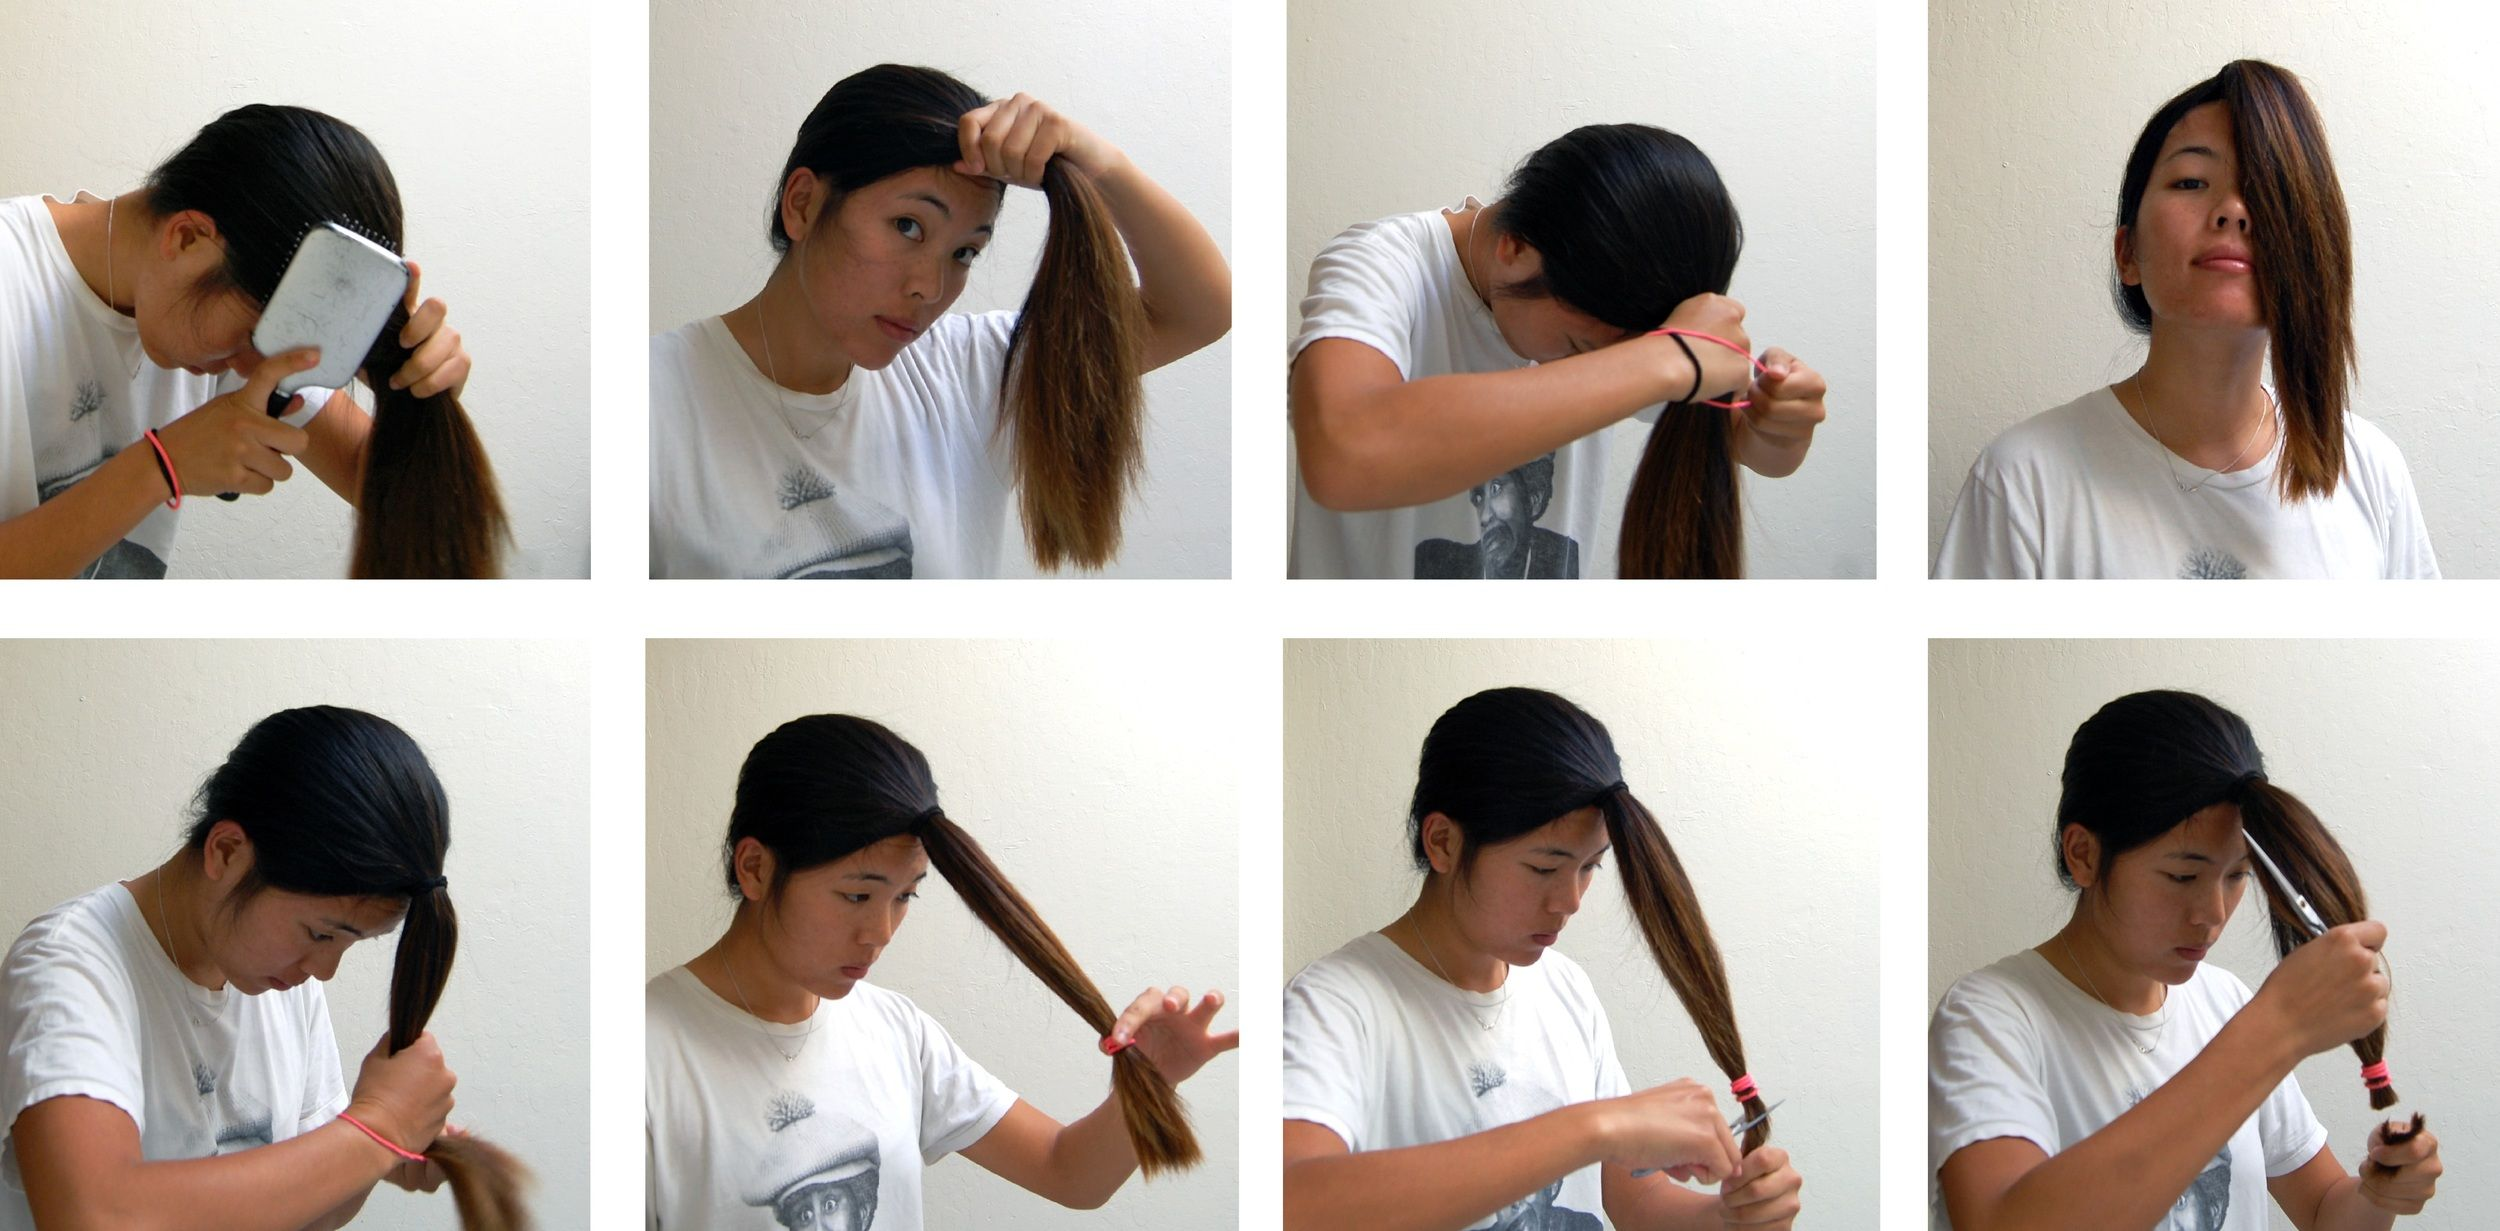 Pin on ♥ hair [to do] cut&color